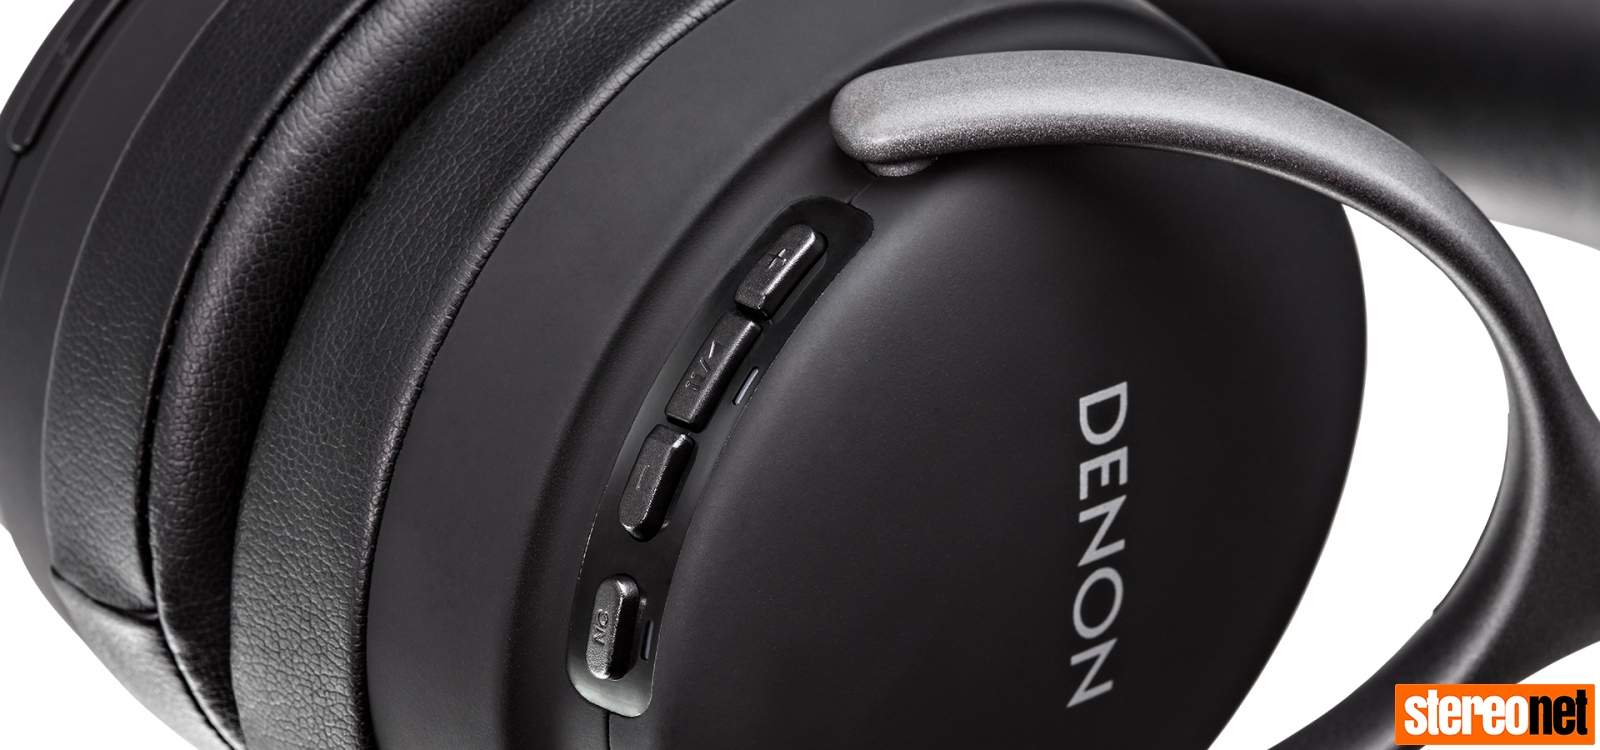 Denon GC headphones